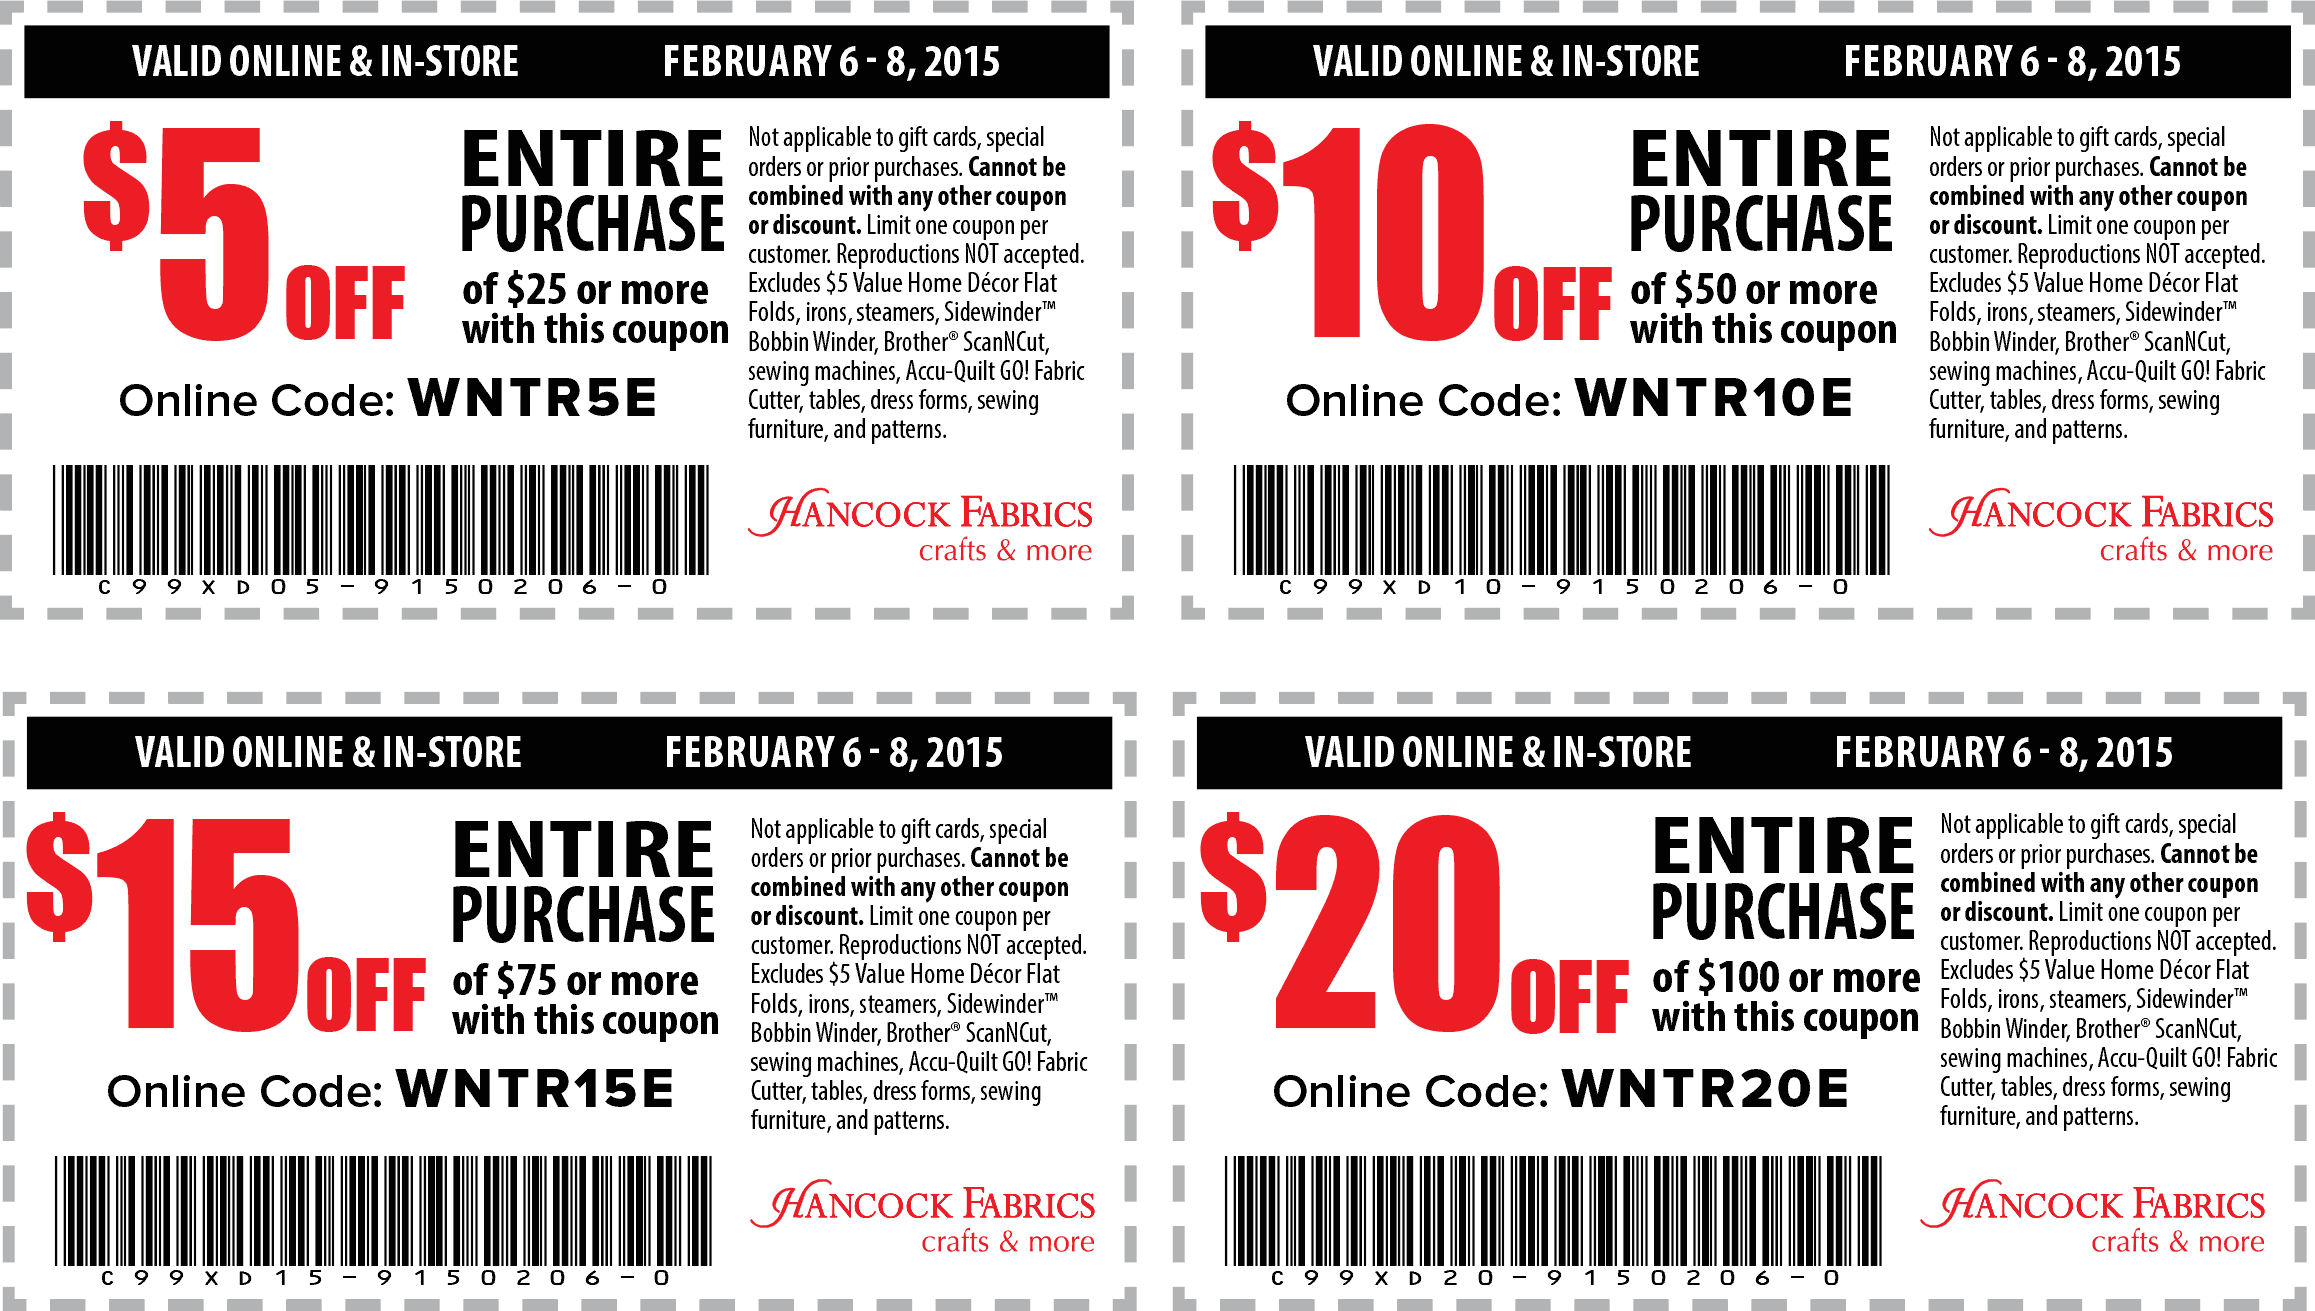 Hancock Fabrics Coupon May 2018 $5 off $25 & more at Hancock Fabrics, or online via promo code WNTR5E